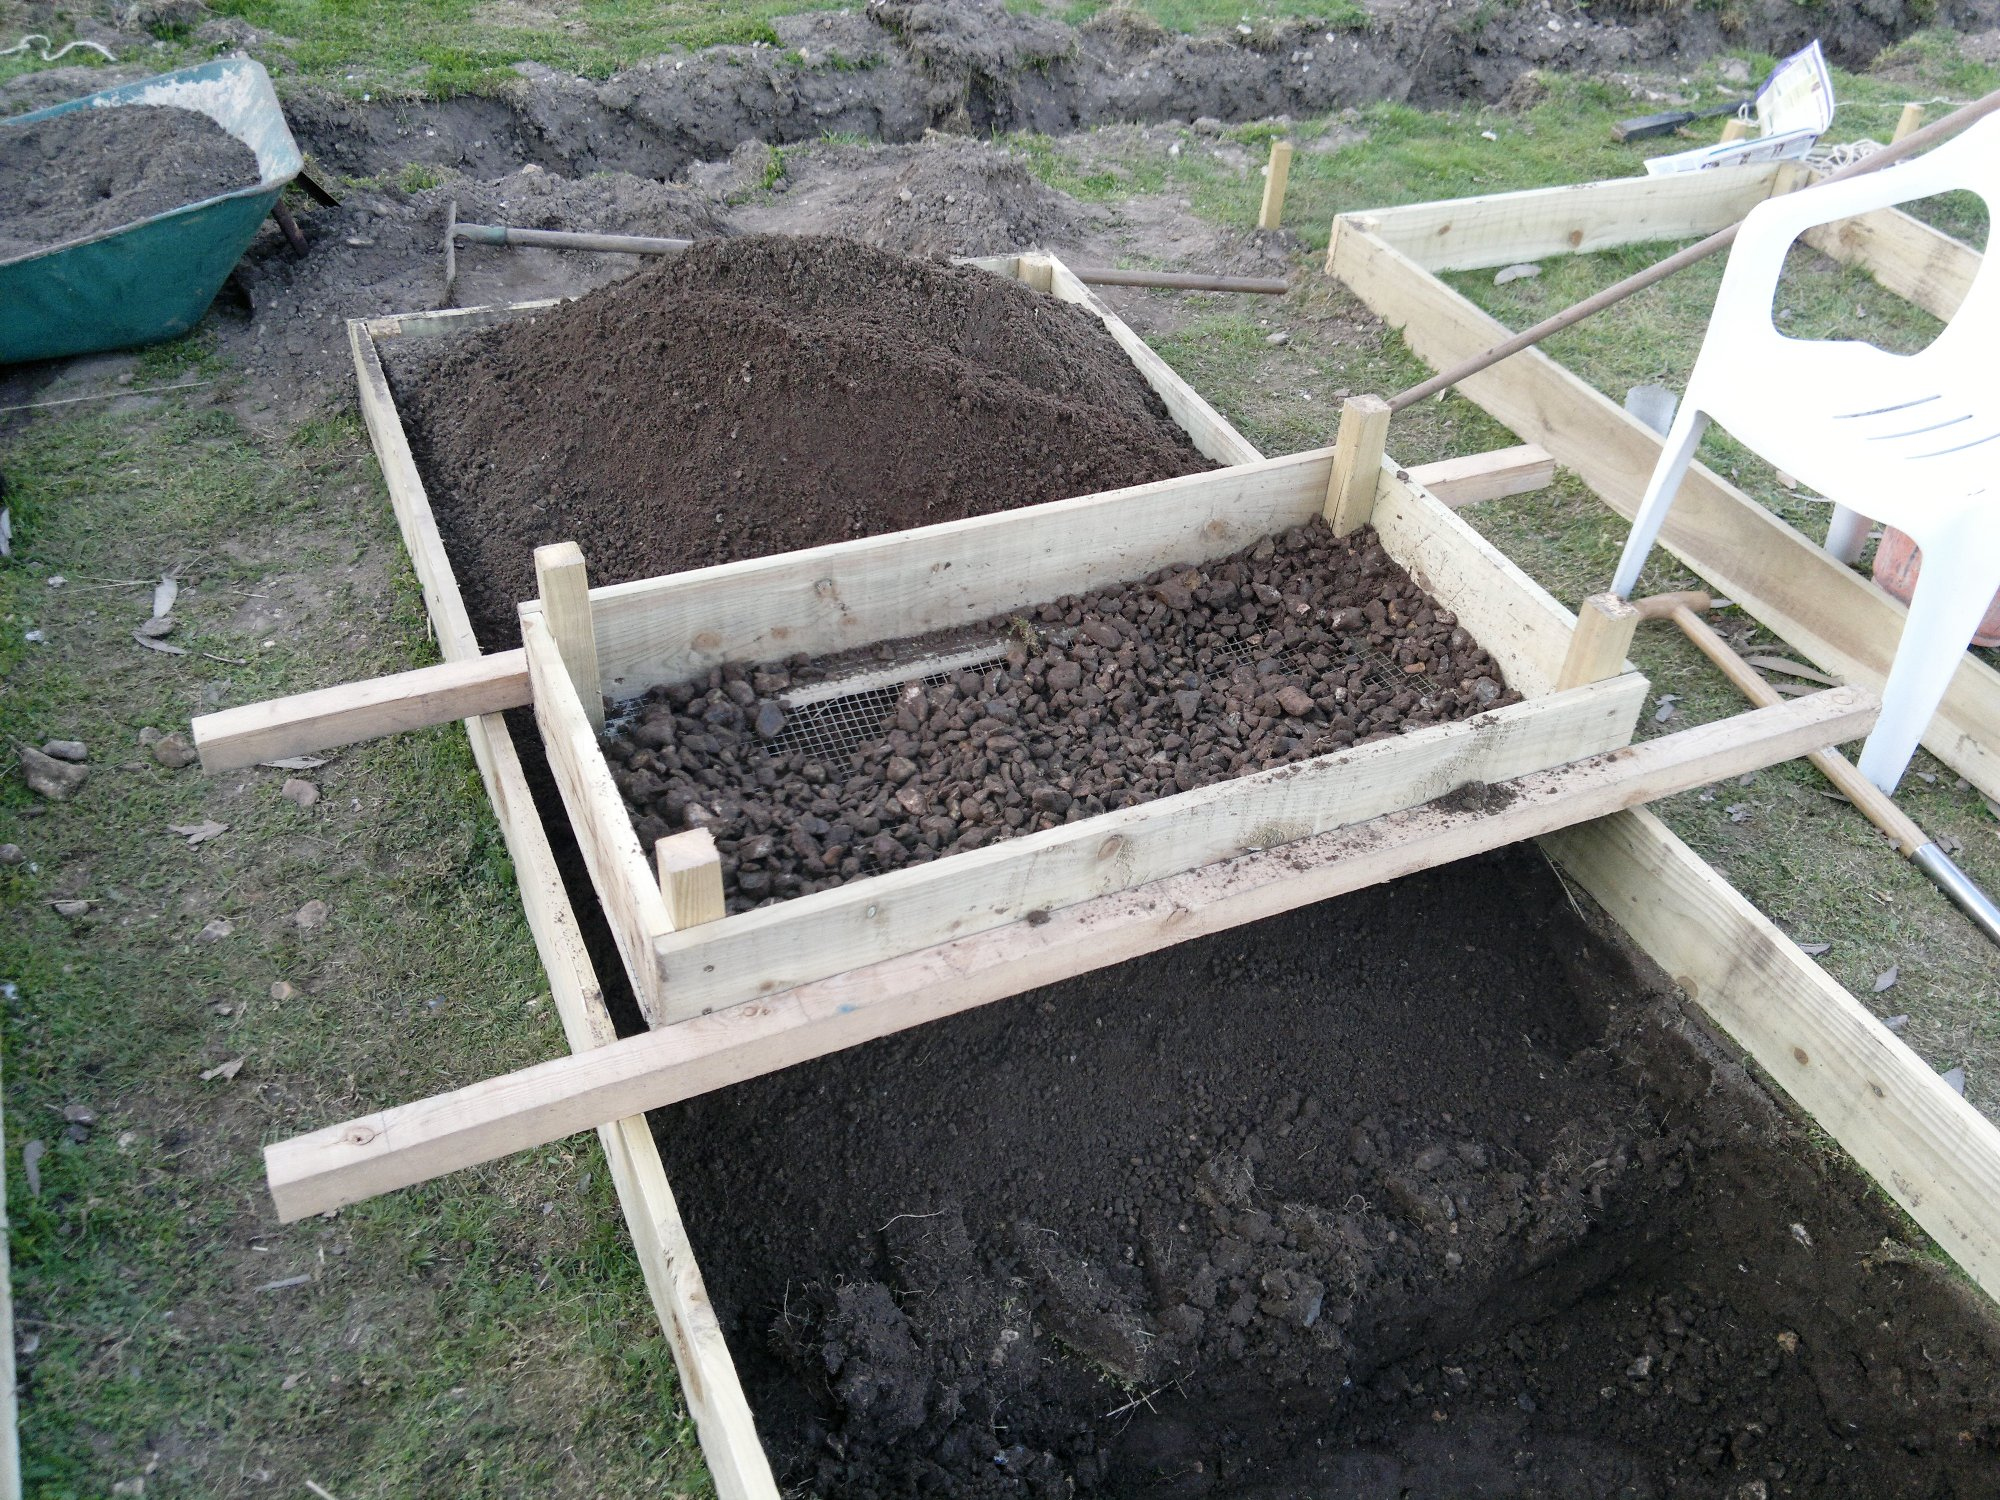 The 'super sieve' made a huge difference to our progress and the soil